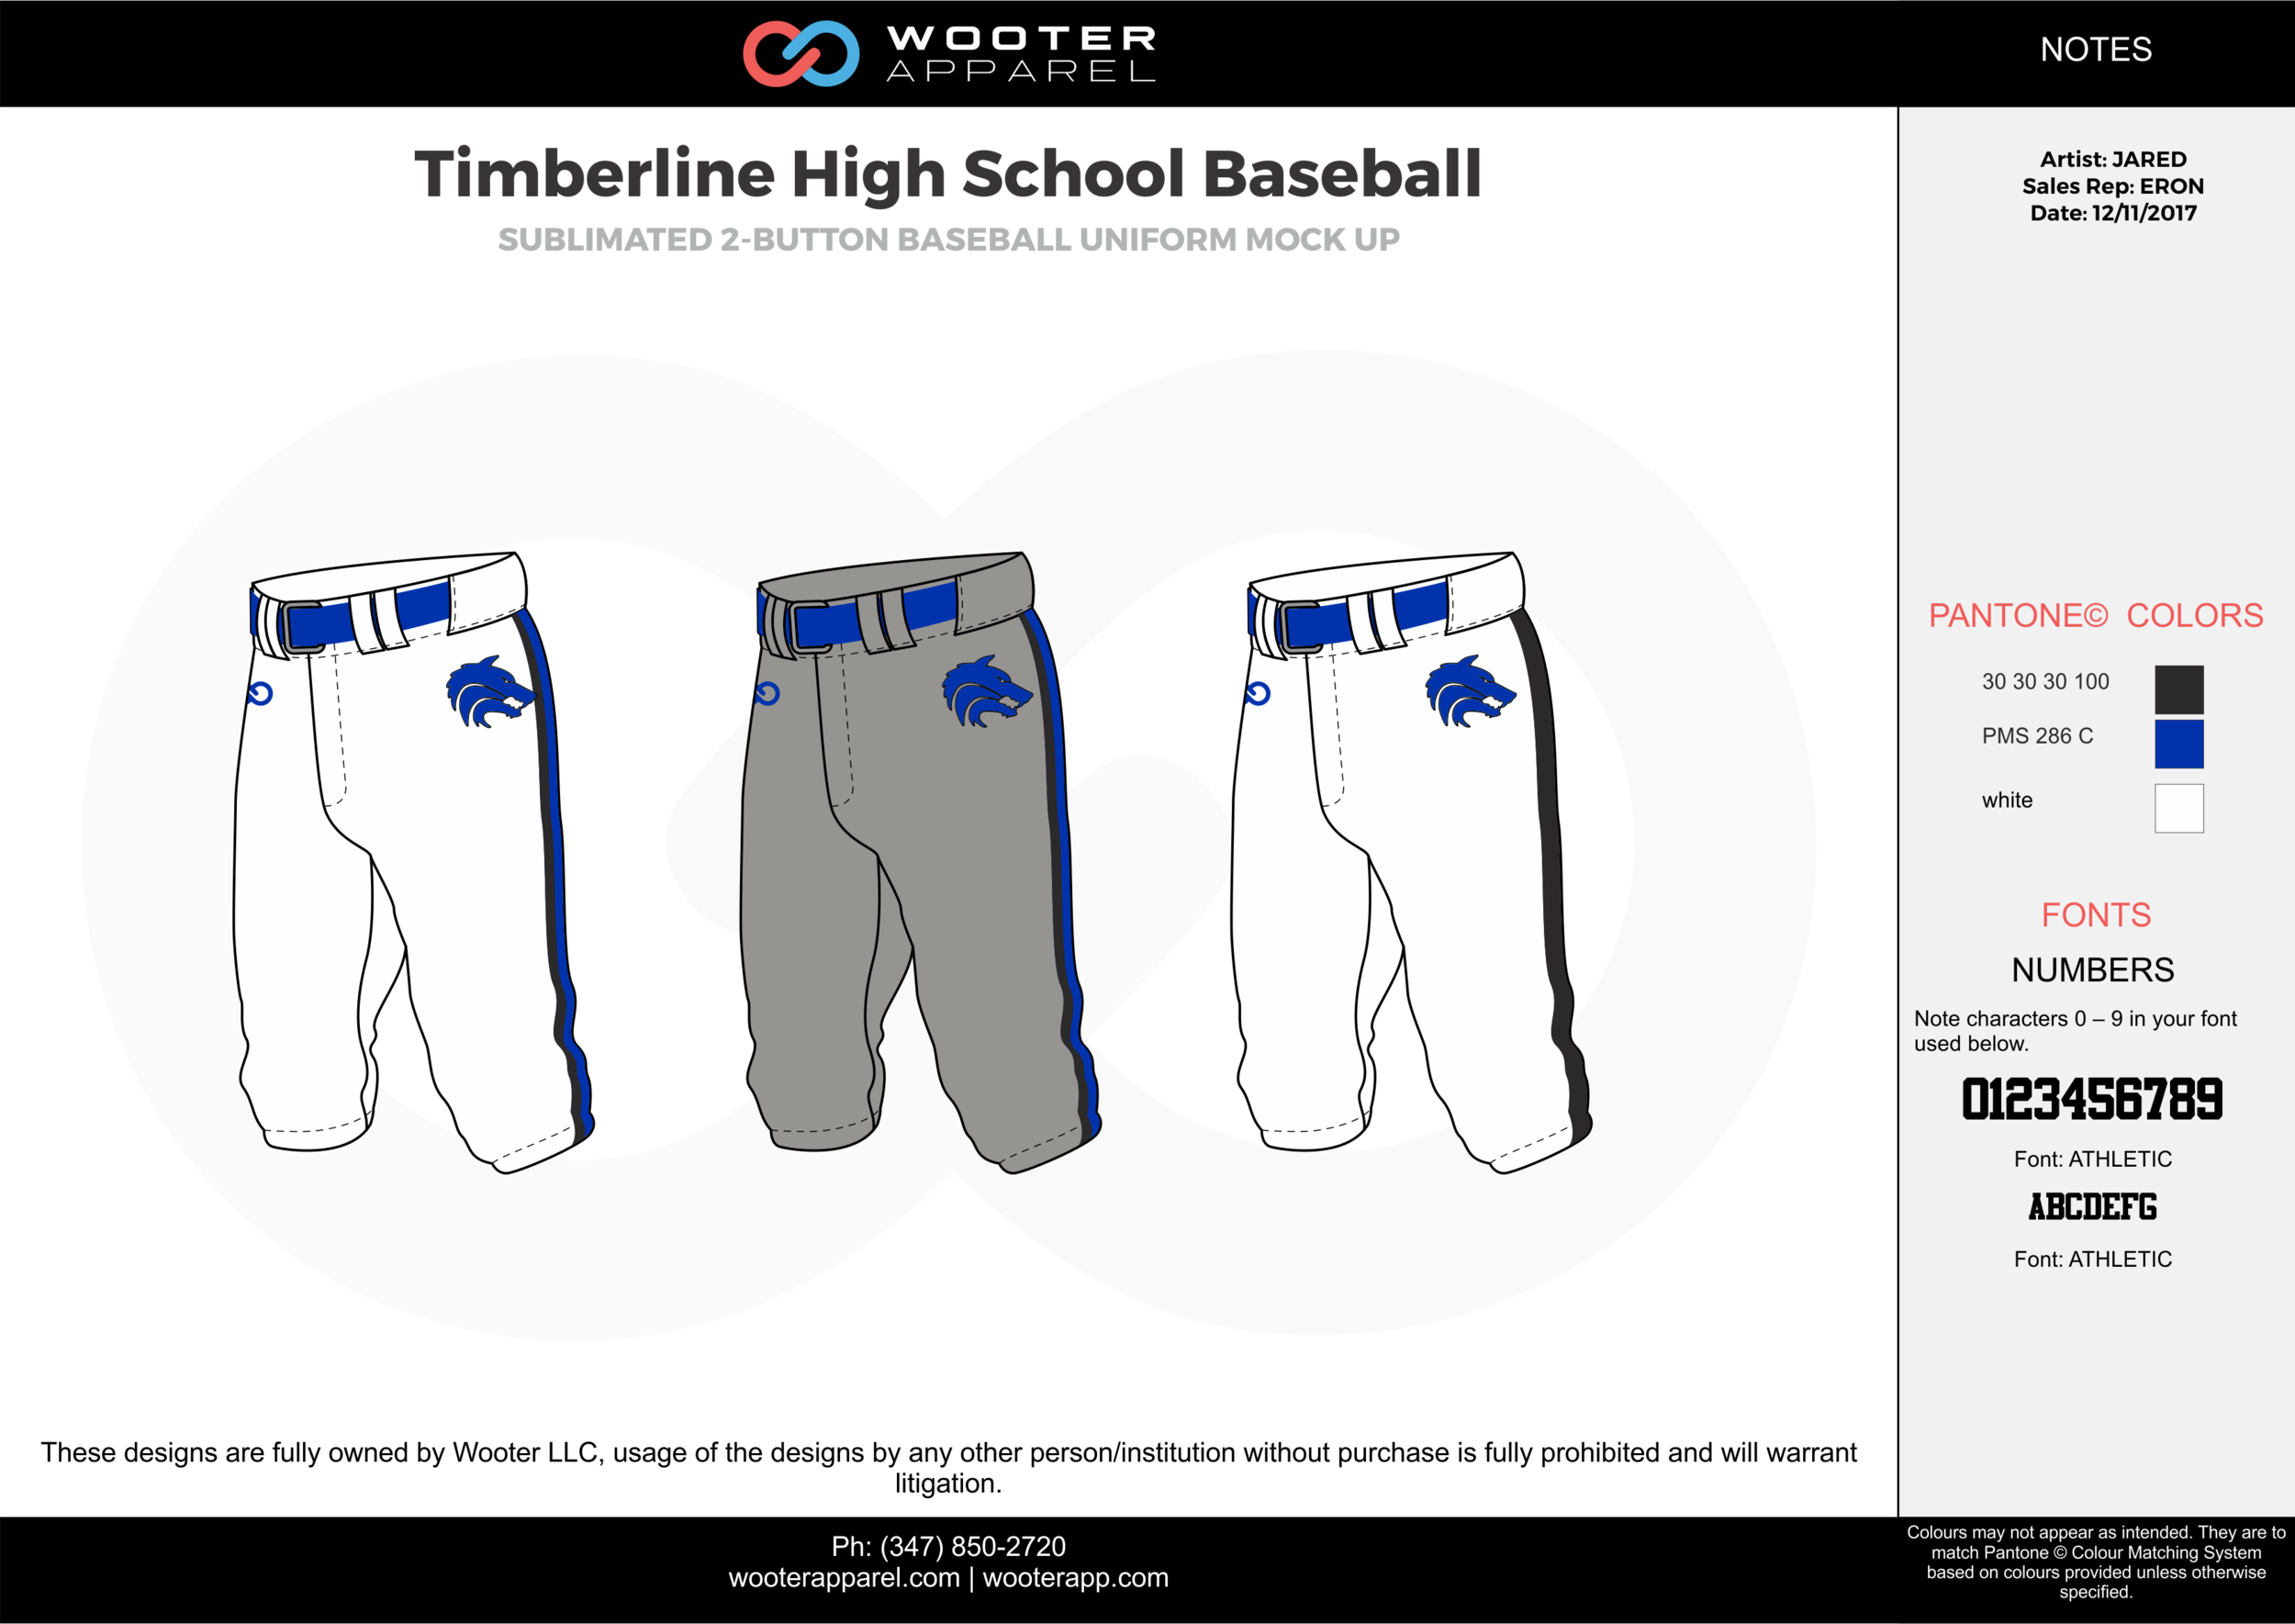 Timberline High School Baseball white gray blue black baseball uniforms jerseys pants